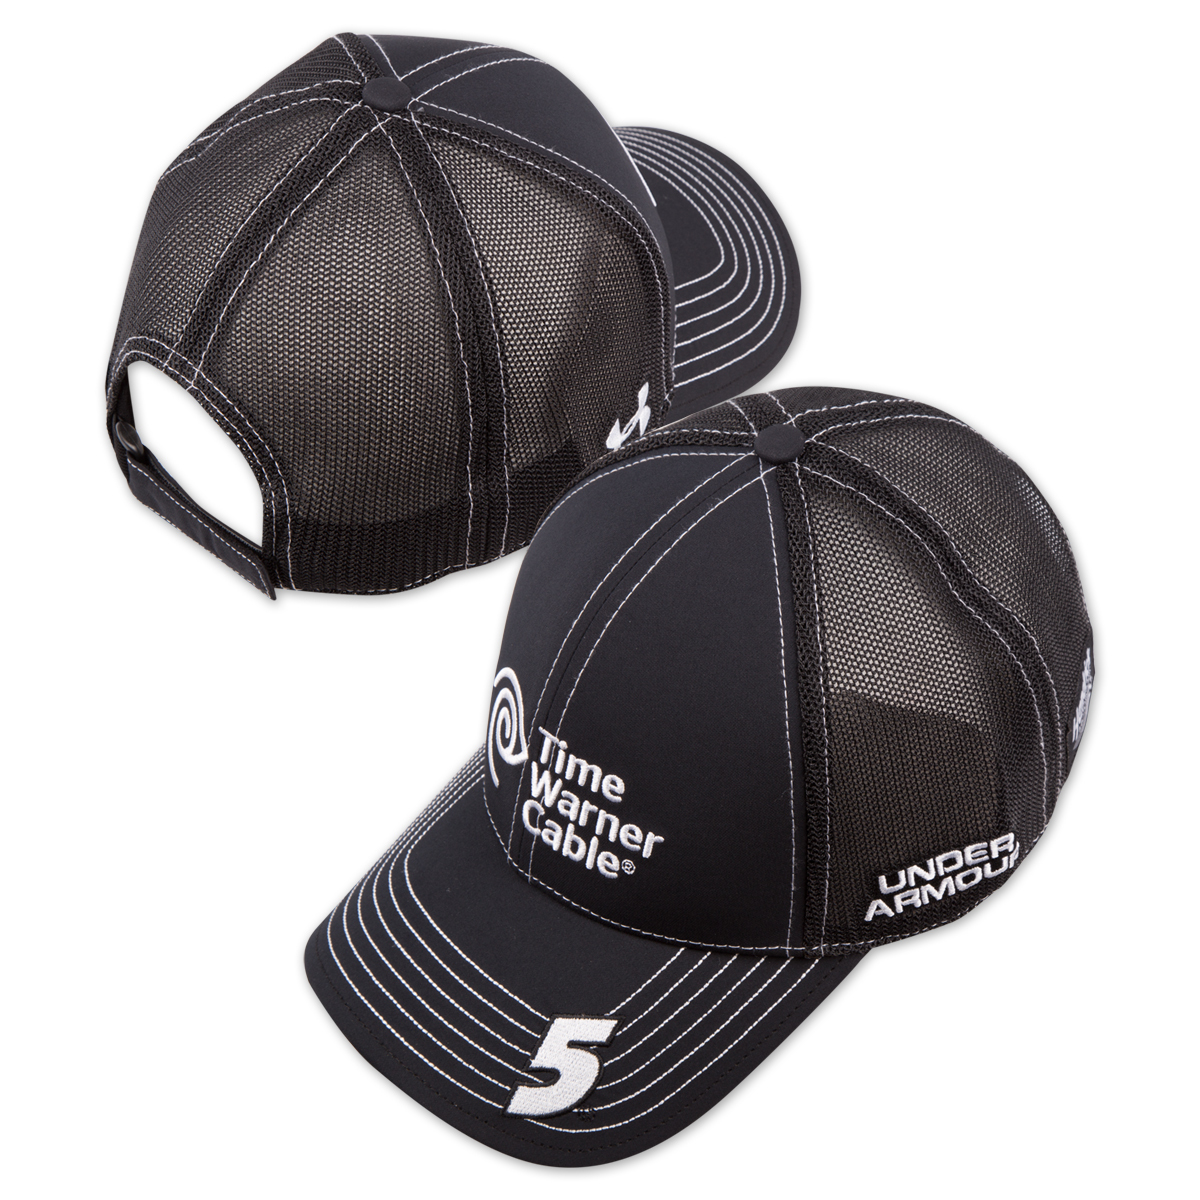 aba21304ebc Kasey Kahne  5 Time Warner Cable Official HMS Team Hat by Under Armour